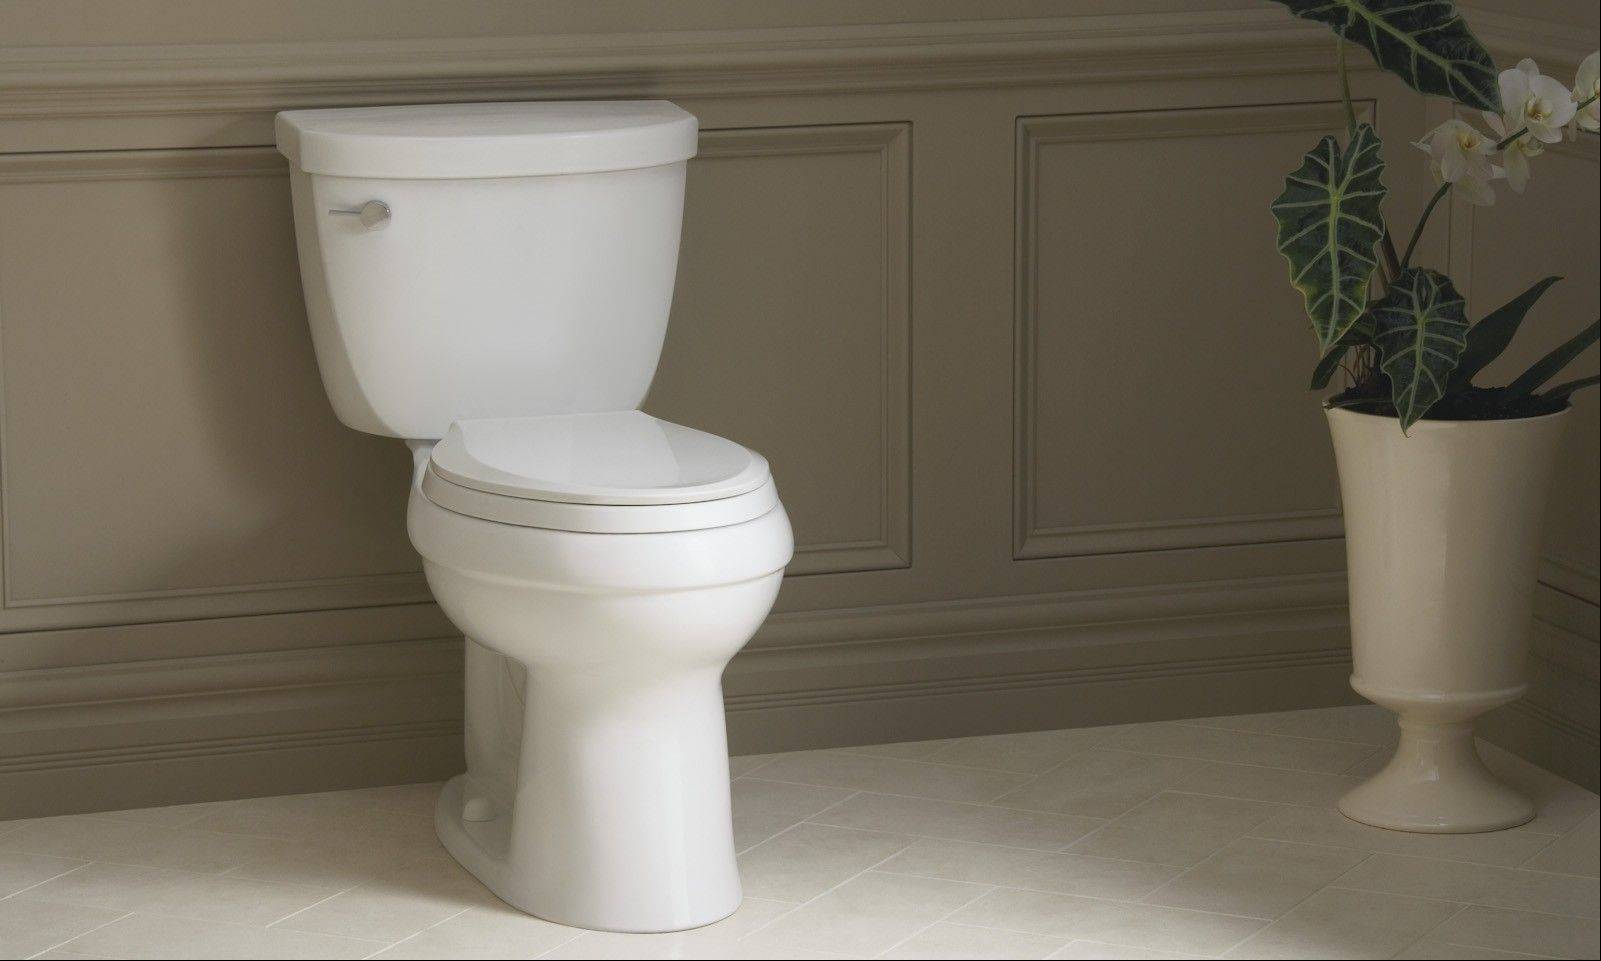 There are many things to consider when purchasing a new toilet.